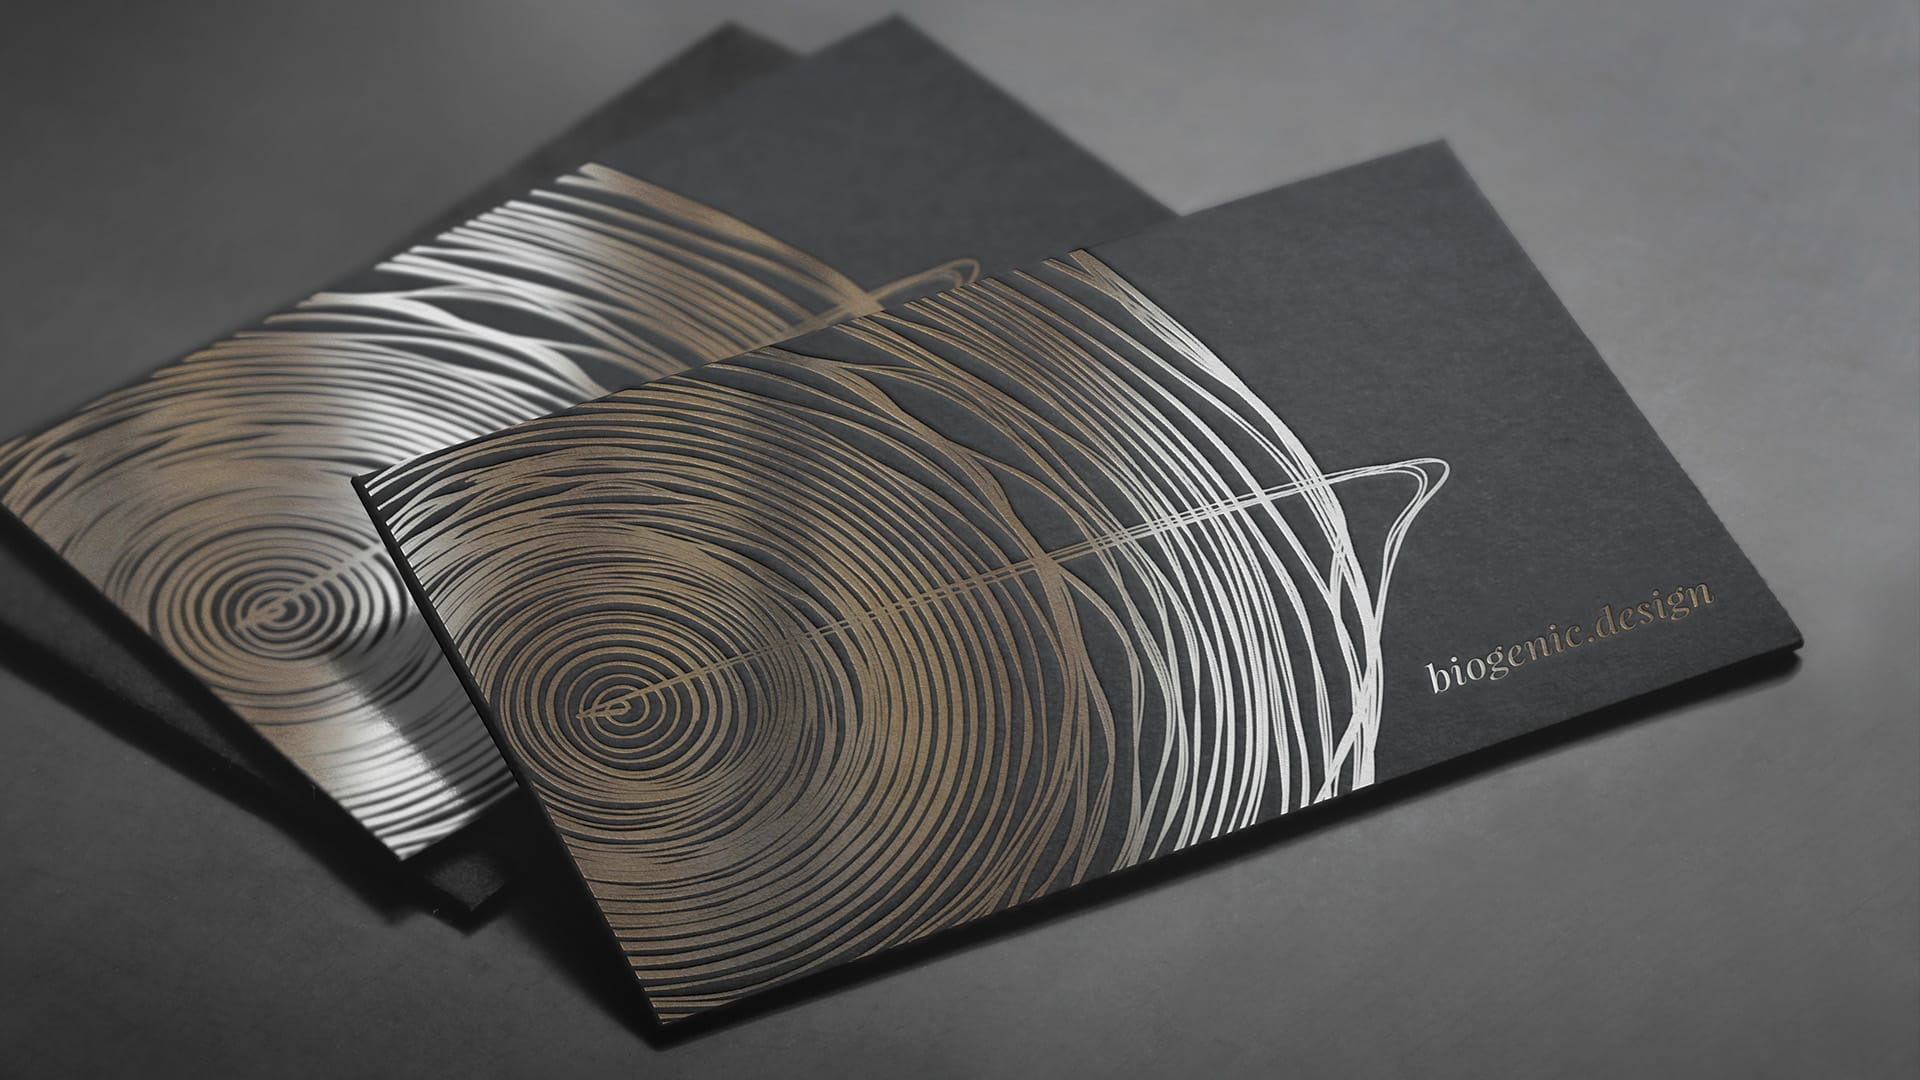 Gold-Embossed-Logos-Serjan_Burlak_BiogenicDesign-6